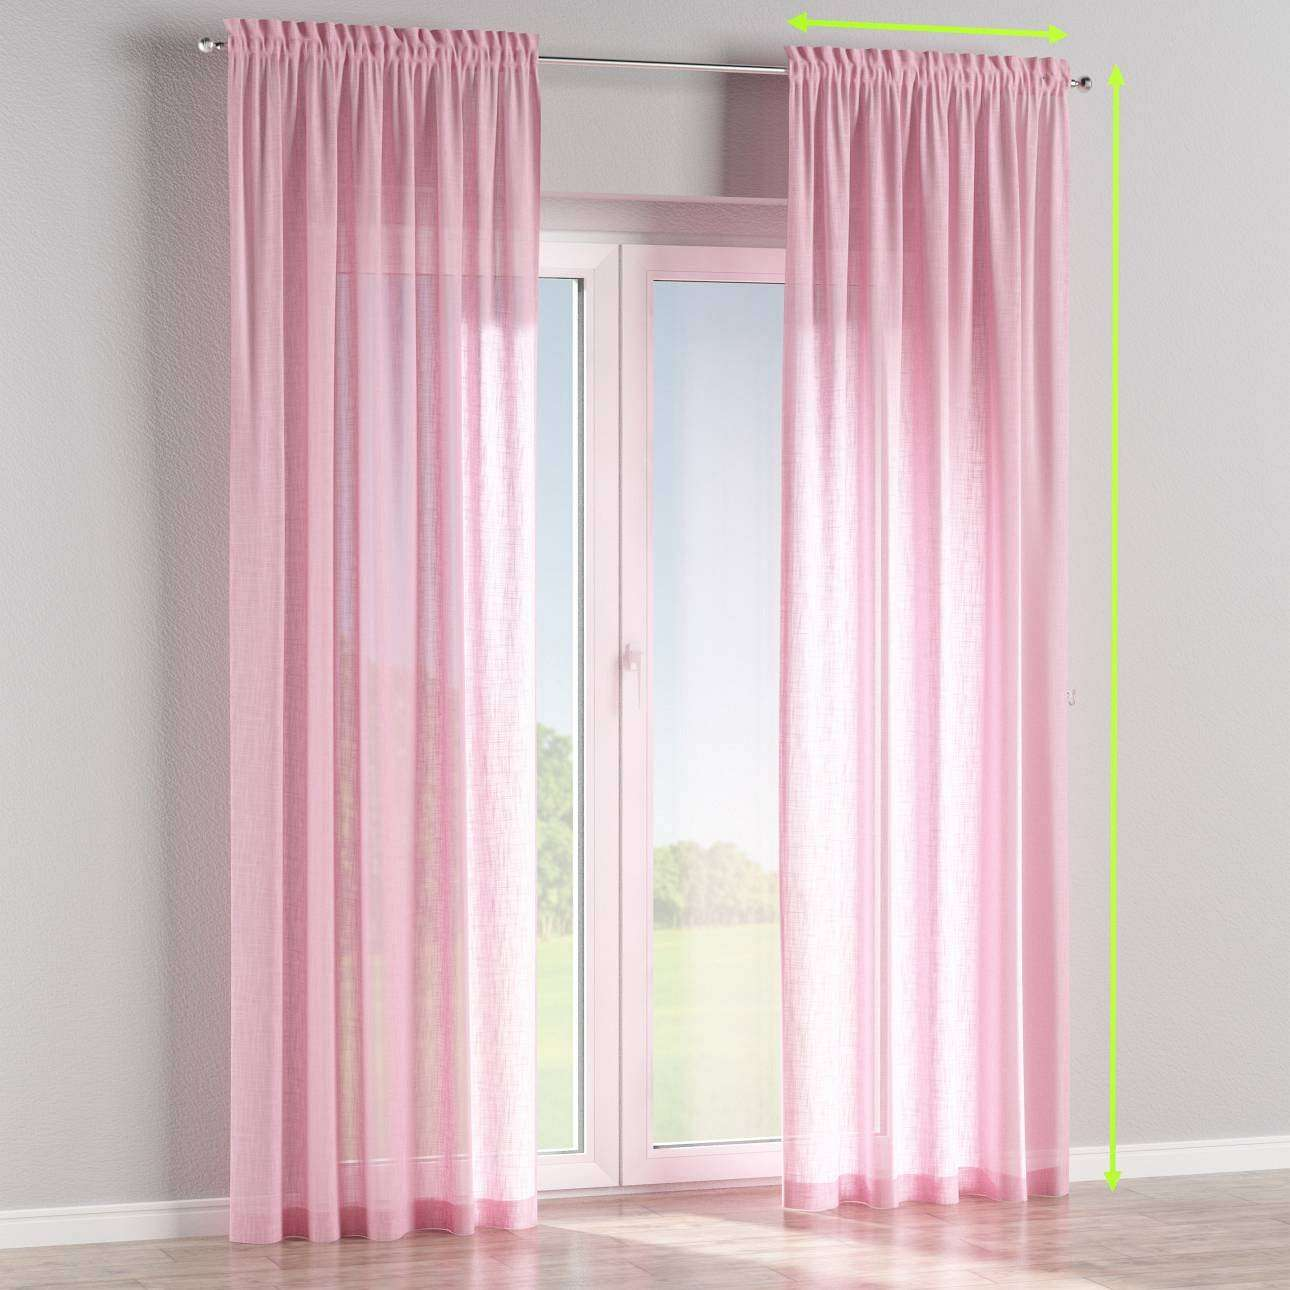 Slot and frill curtains in collection Romantica, fabric: 128-03